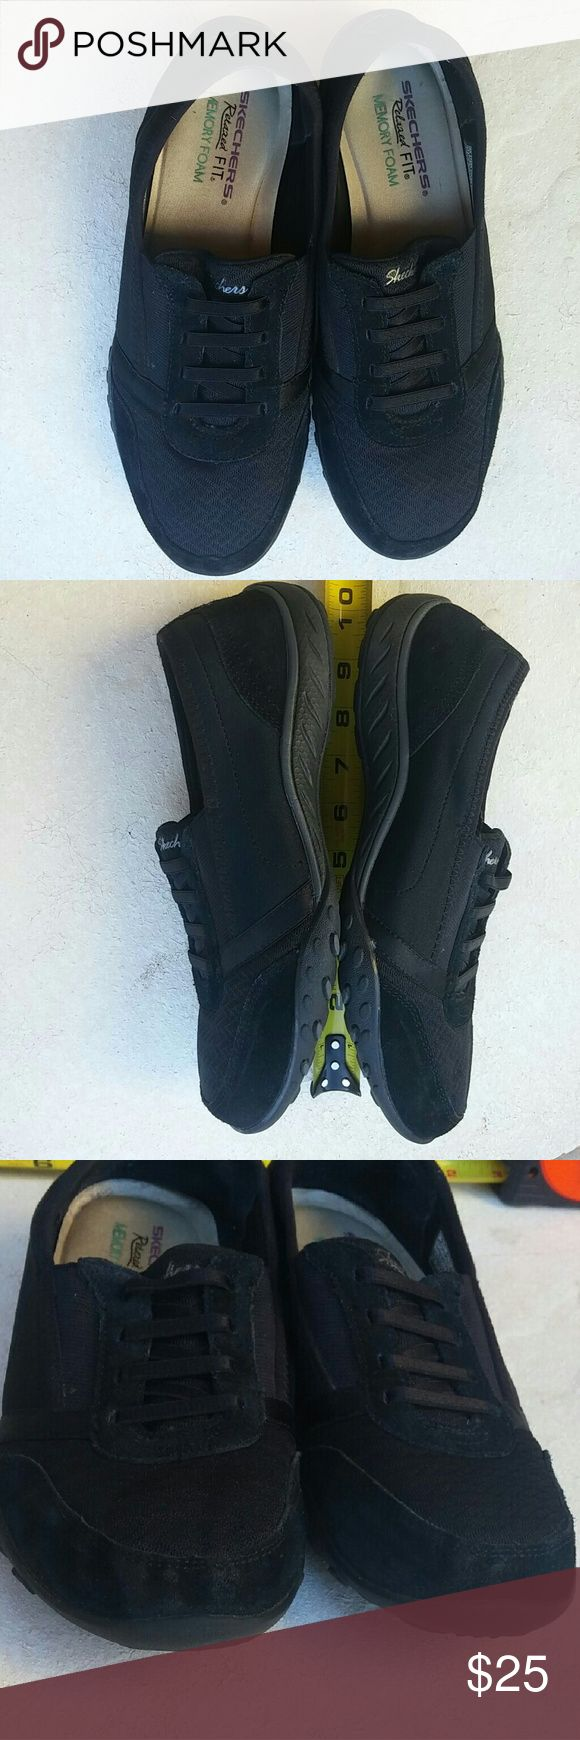 Skechers memory foam shoes Relaxed FIT Skechers black shoes with memory foam, used have has discoloration, but in great shape.  Size us 7.5 Eu 37.5 Skechers Shoes Sneakers